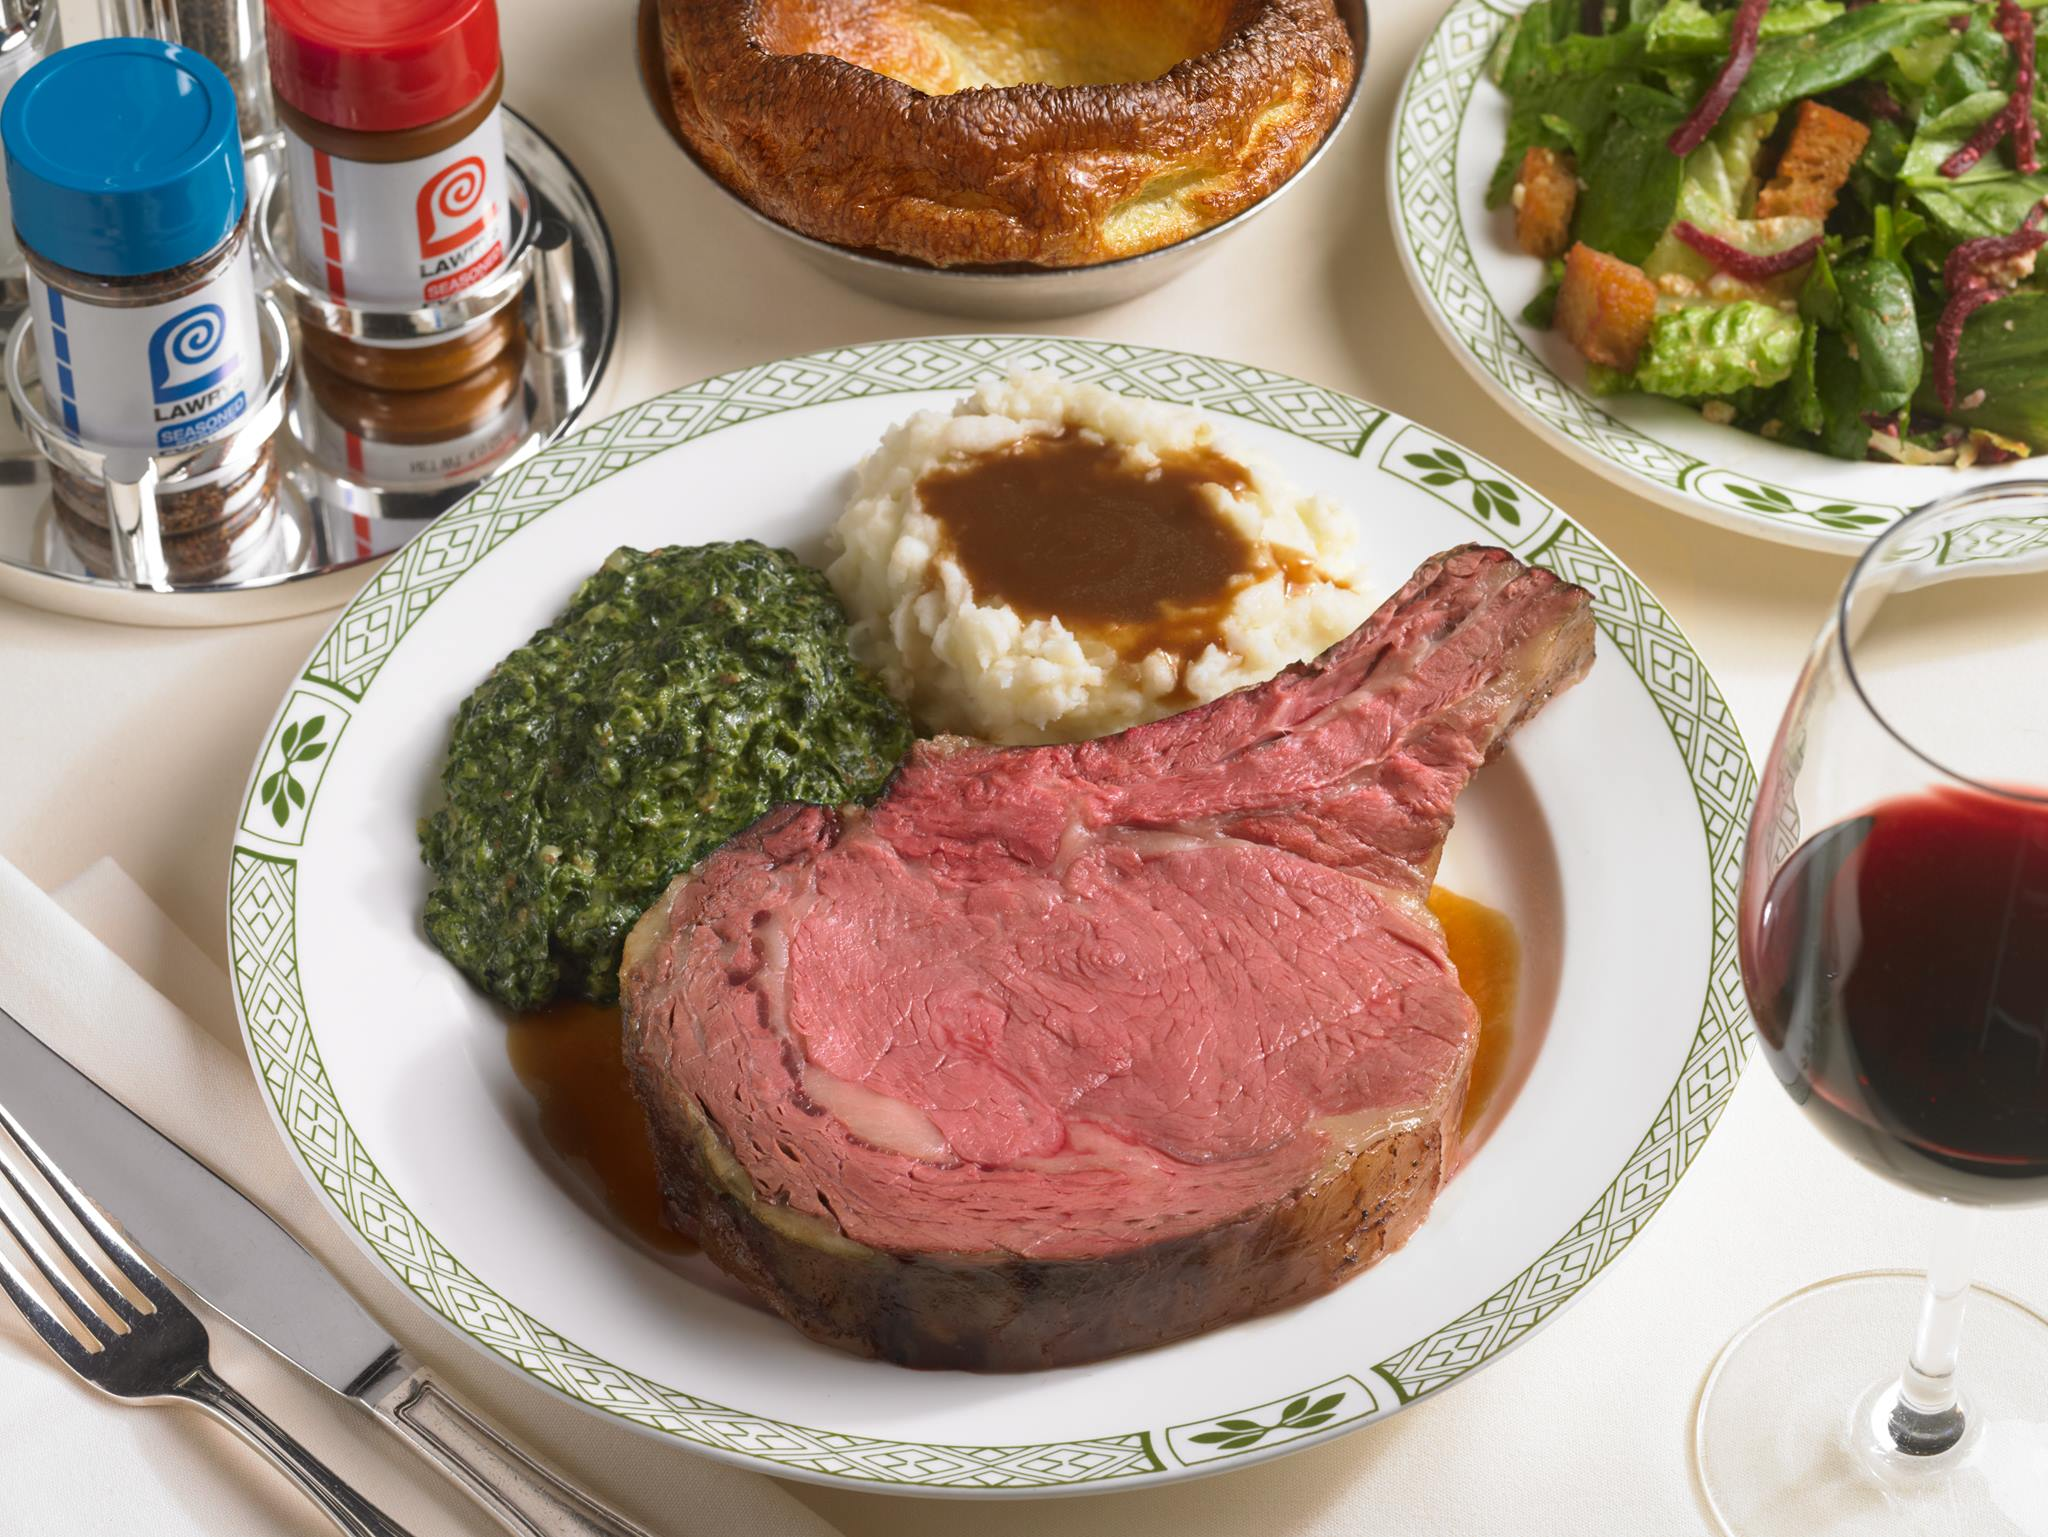 Bone-in Roasted Beef | Photo Credit: Lawry's The Prime Rib